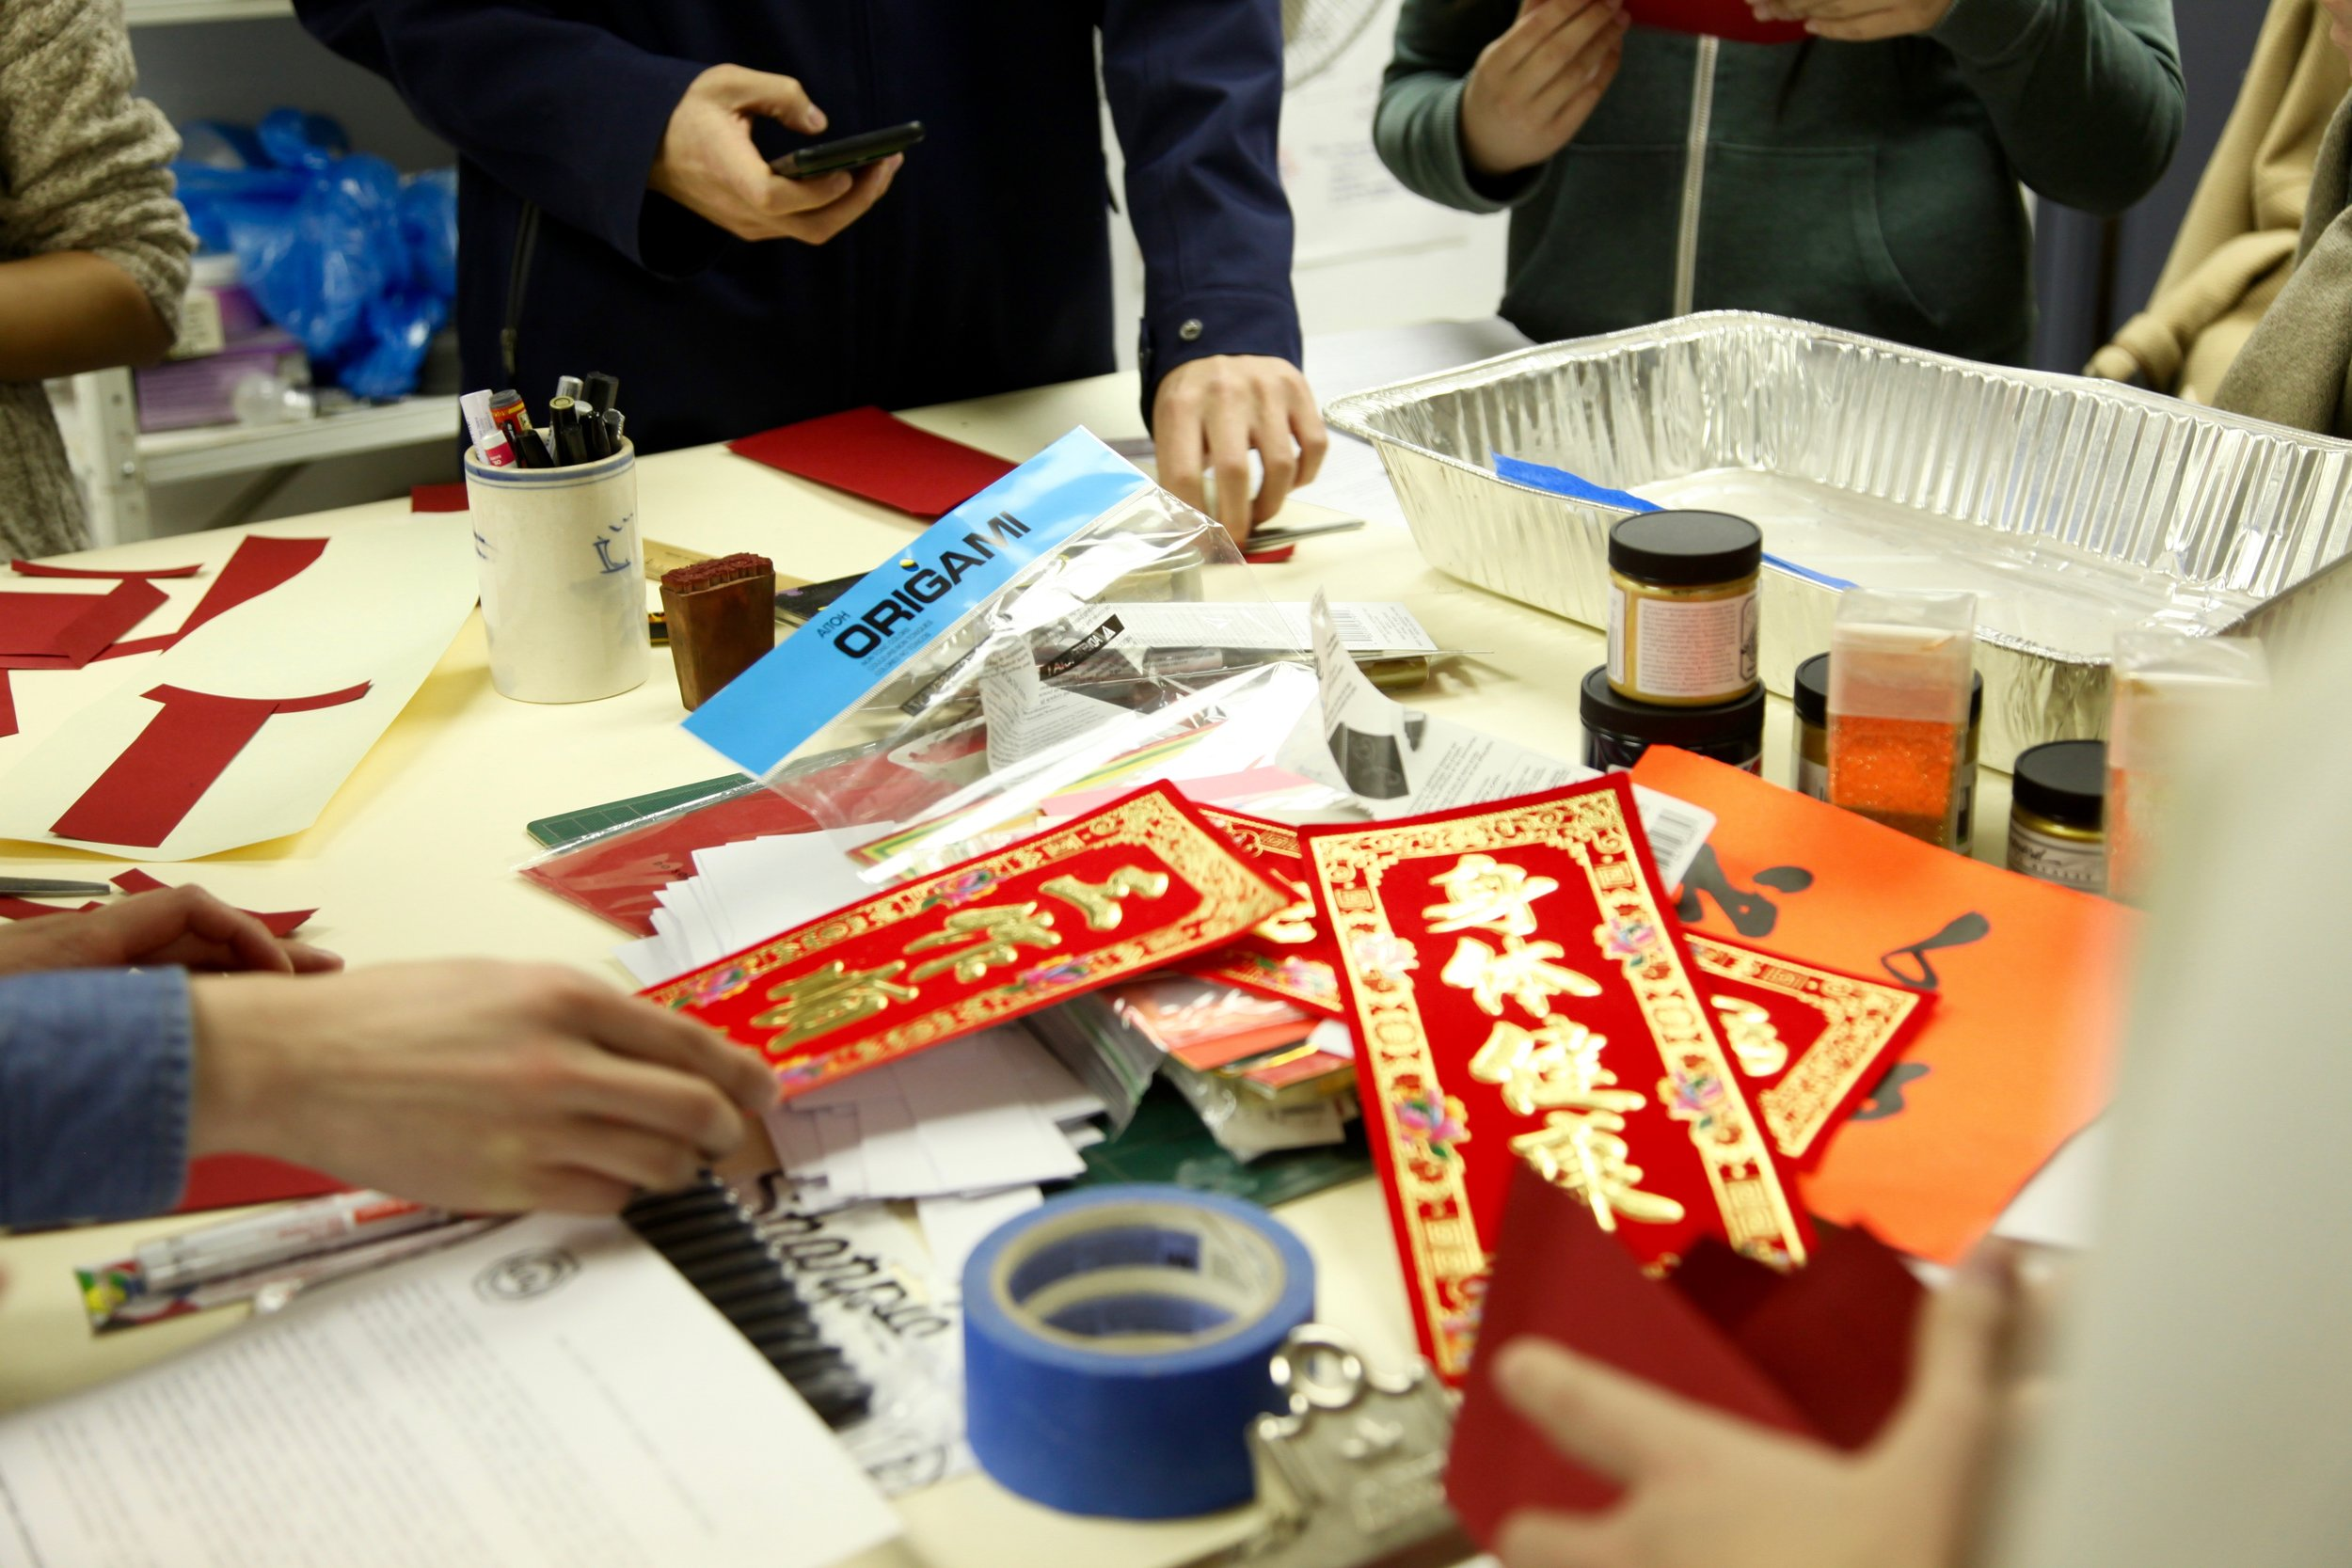 Workshop participants make red envelopes in the W.O.W screen-printing studio.